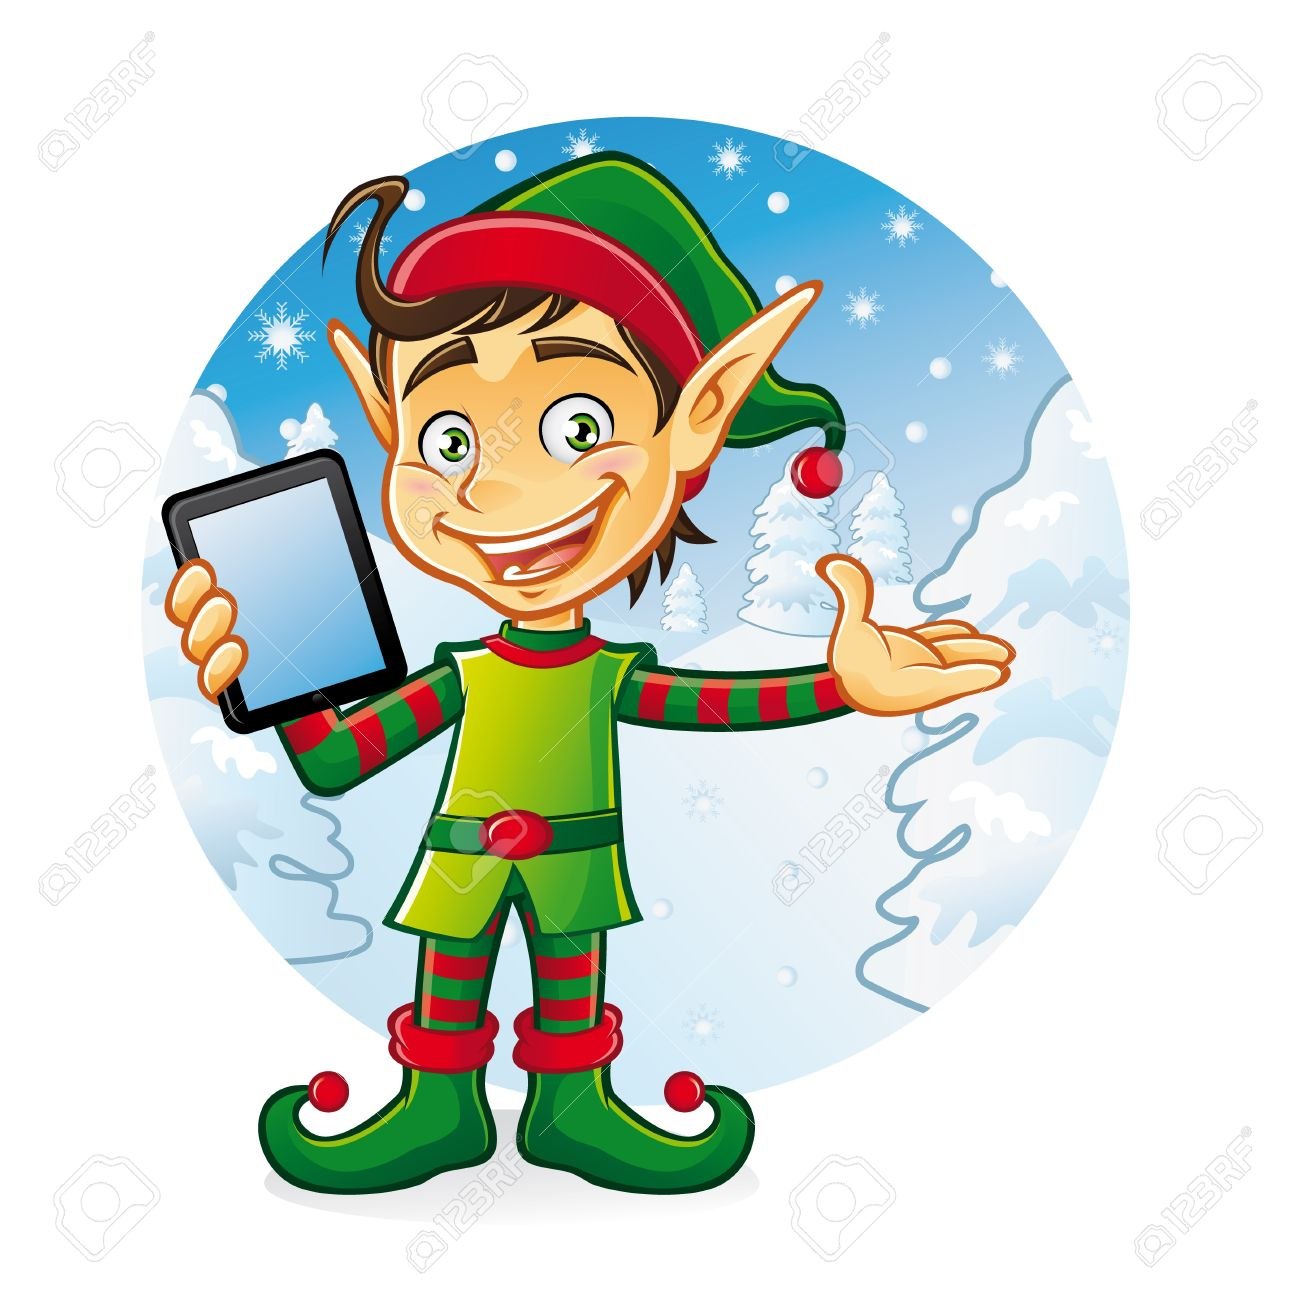 Cartoon young elf is holding ipad with a friendly smile as if to welcome us with a background of snow and pine trees in winter Stock Vector - 16974275